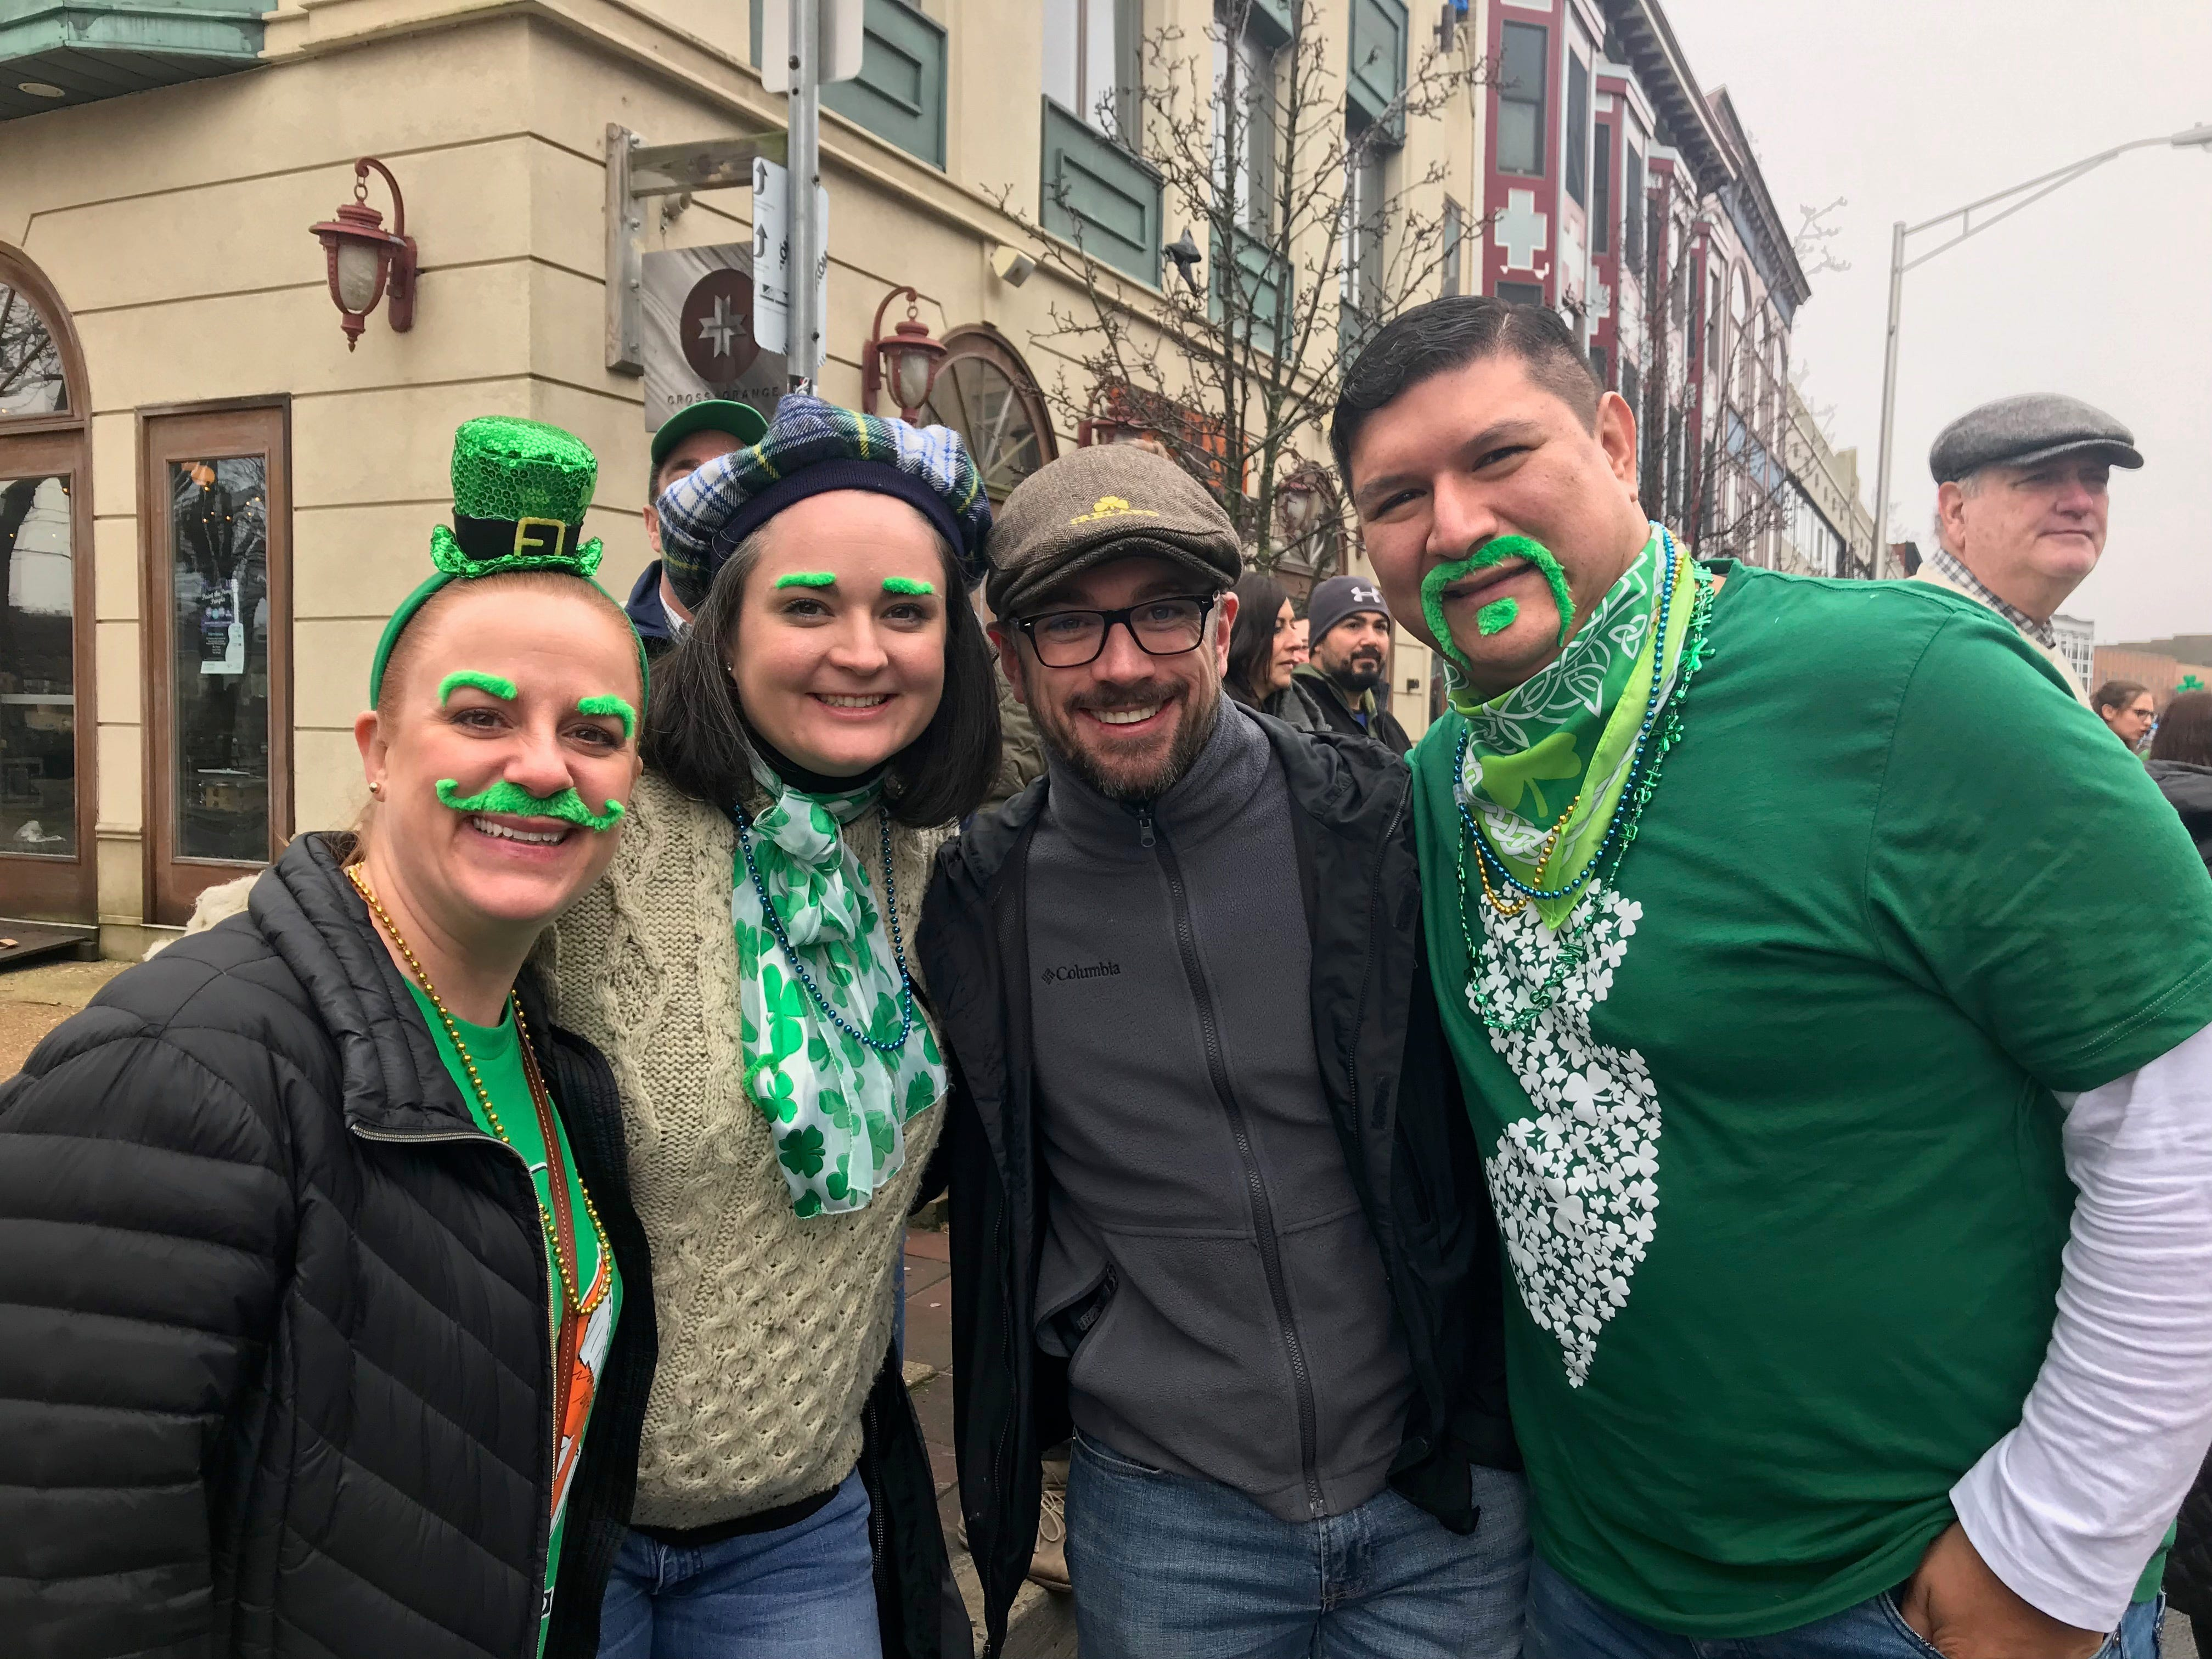 From left: Liz Thompson, Alexis Fulks, Kris Fulks and Ray Thompson, all of Tinton Falls, watch the St. Patrick's Day Parade in Asbury Park from Cookman Avenue on March 10, 2019.